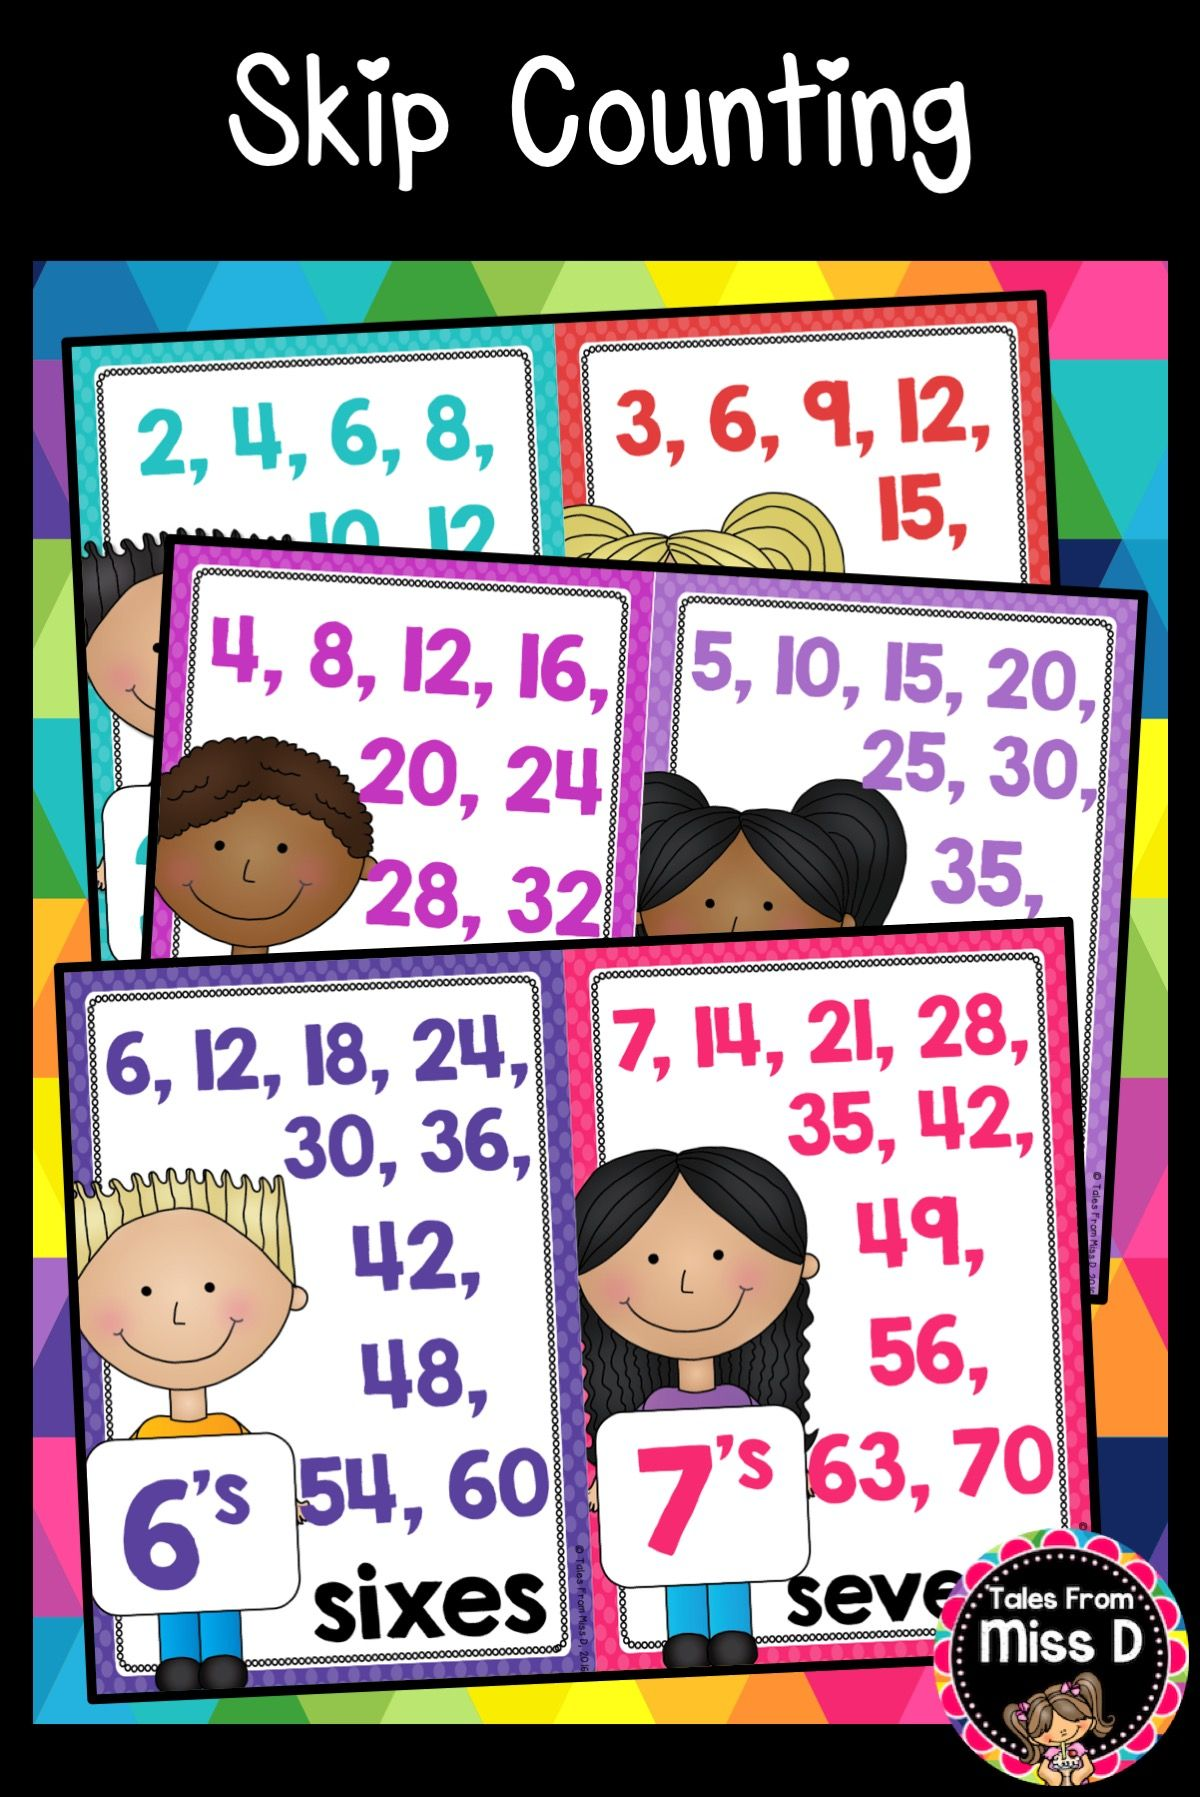 Skip Counting Posters : counting, posters, These, Counting, Posters, Class, Display, Assist, Students, Counting., Inc…, Counting,, Number, Sense,, Operations